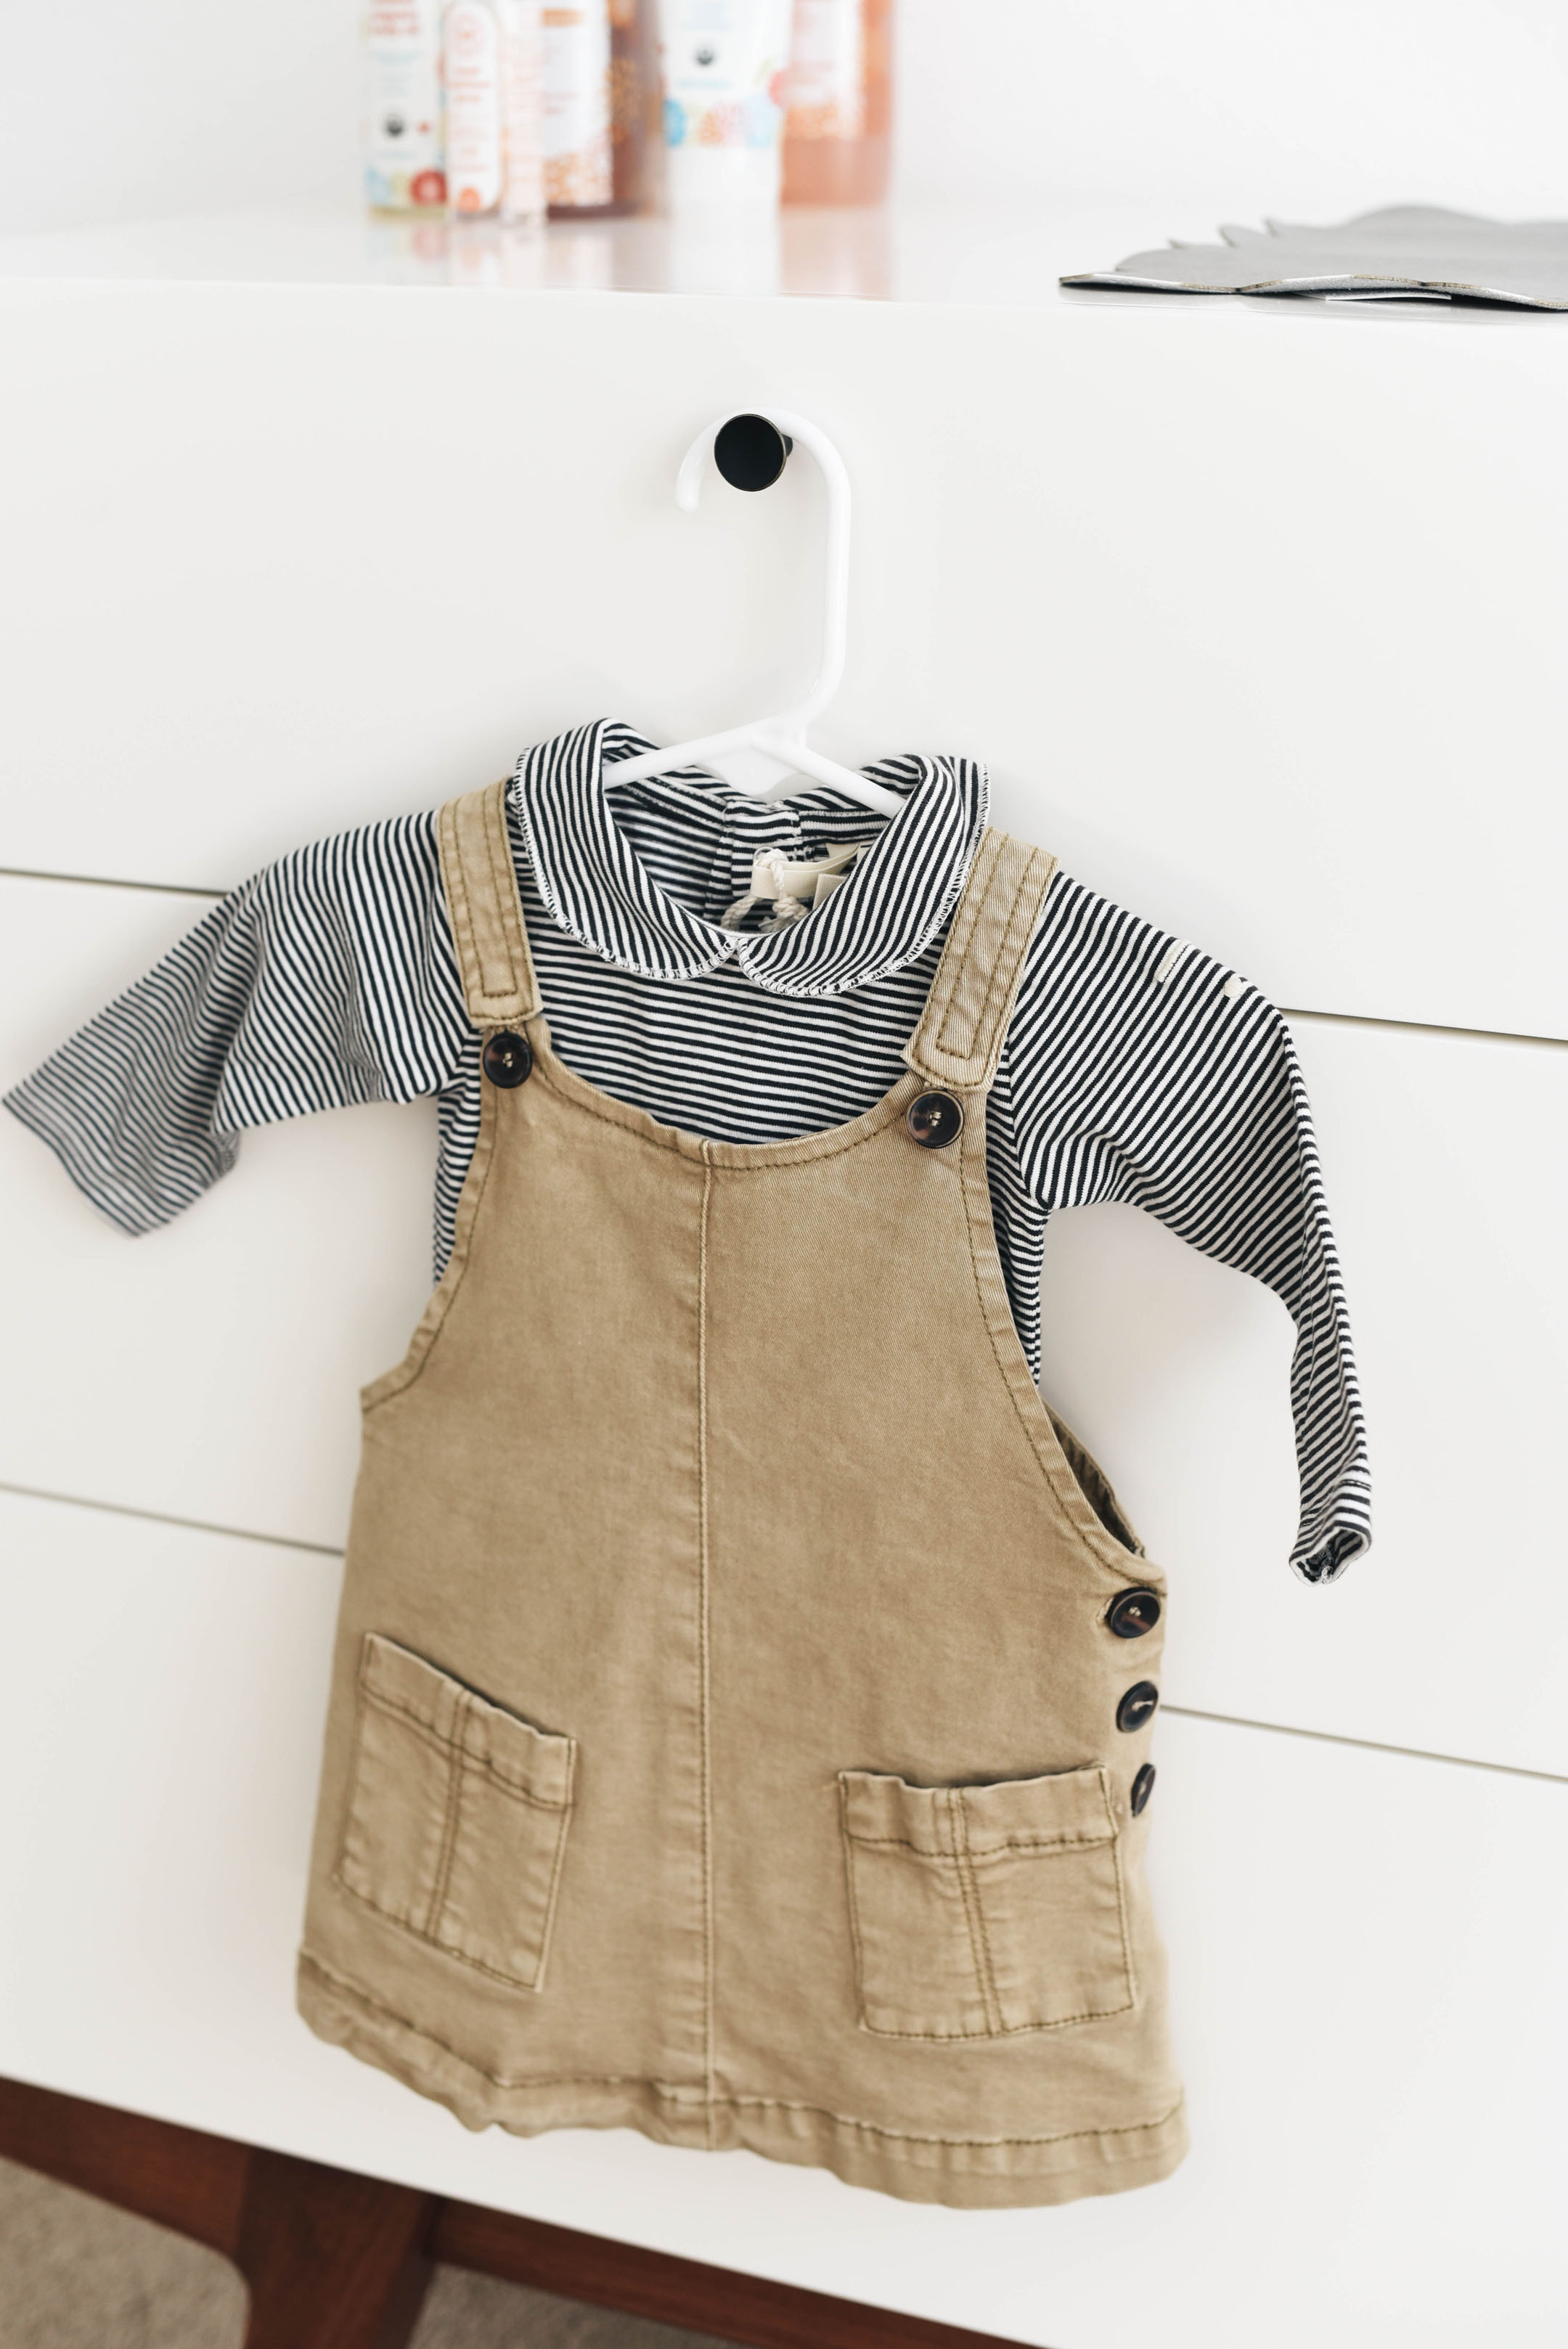 Neutral baby clothes for a girl